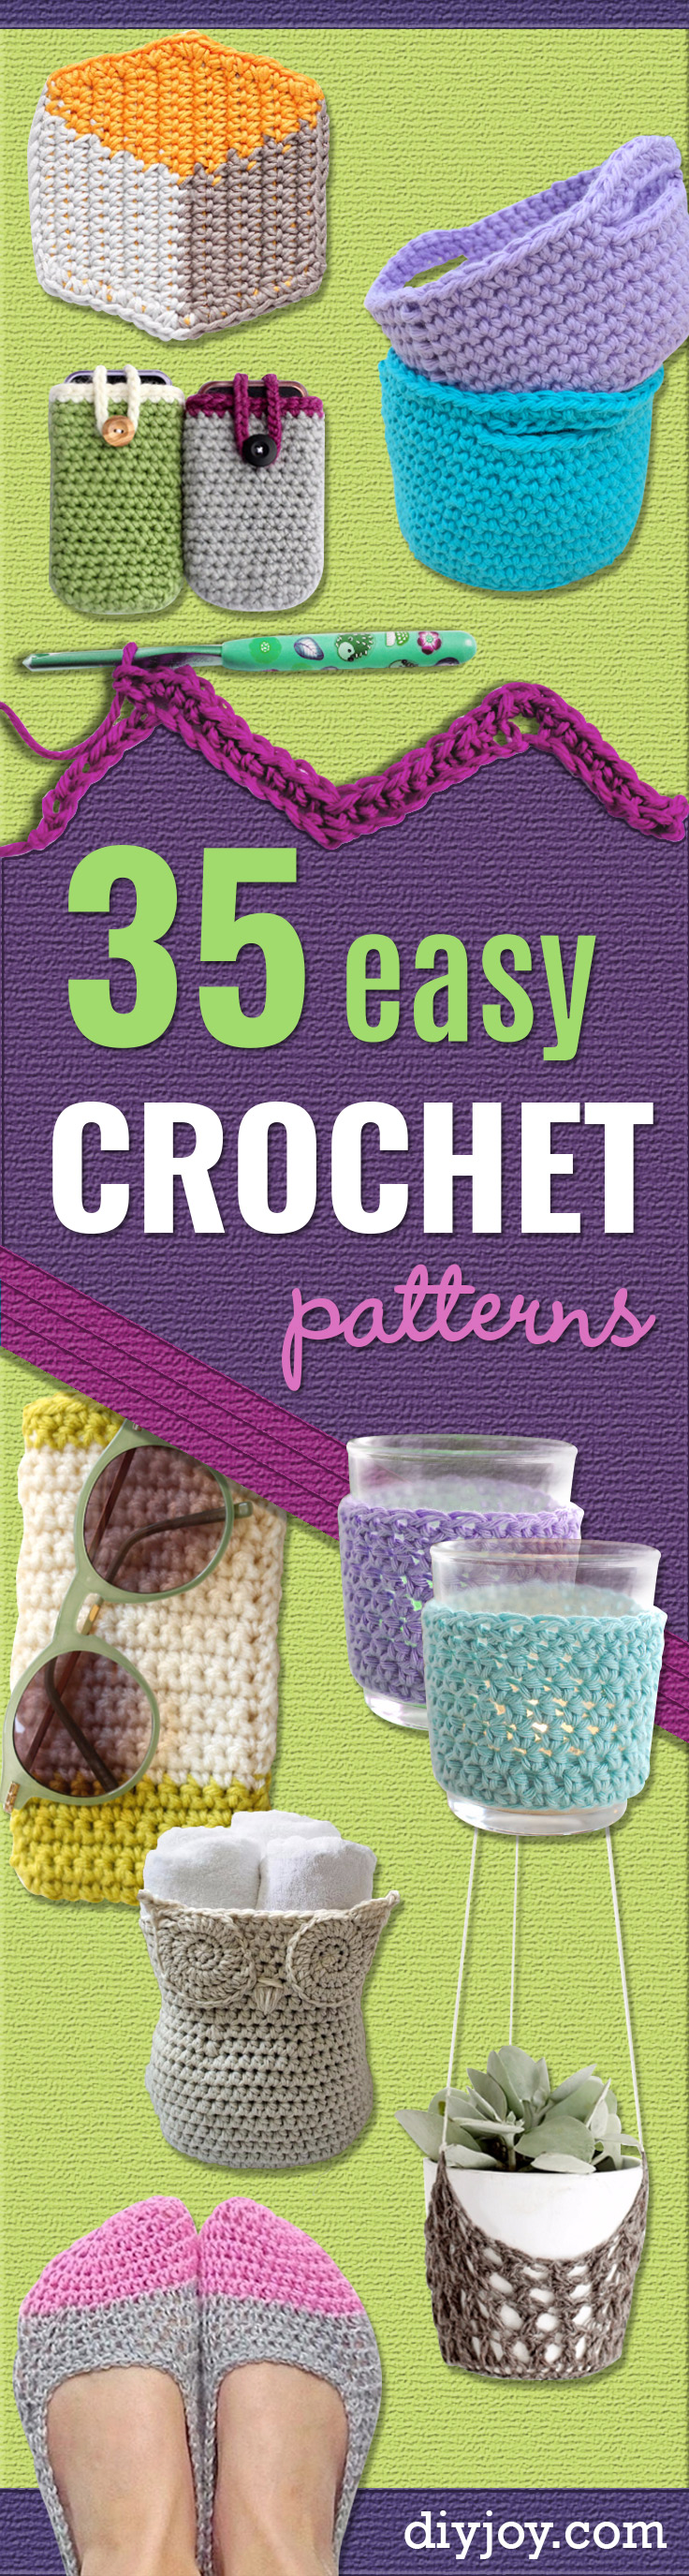 Best Selling Crochet Items For a Fall Craft Fair |Easy Crochet Craft Projects